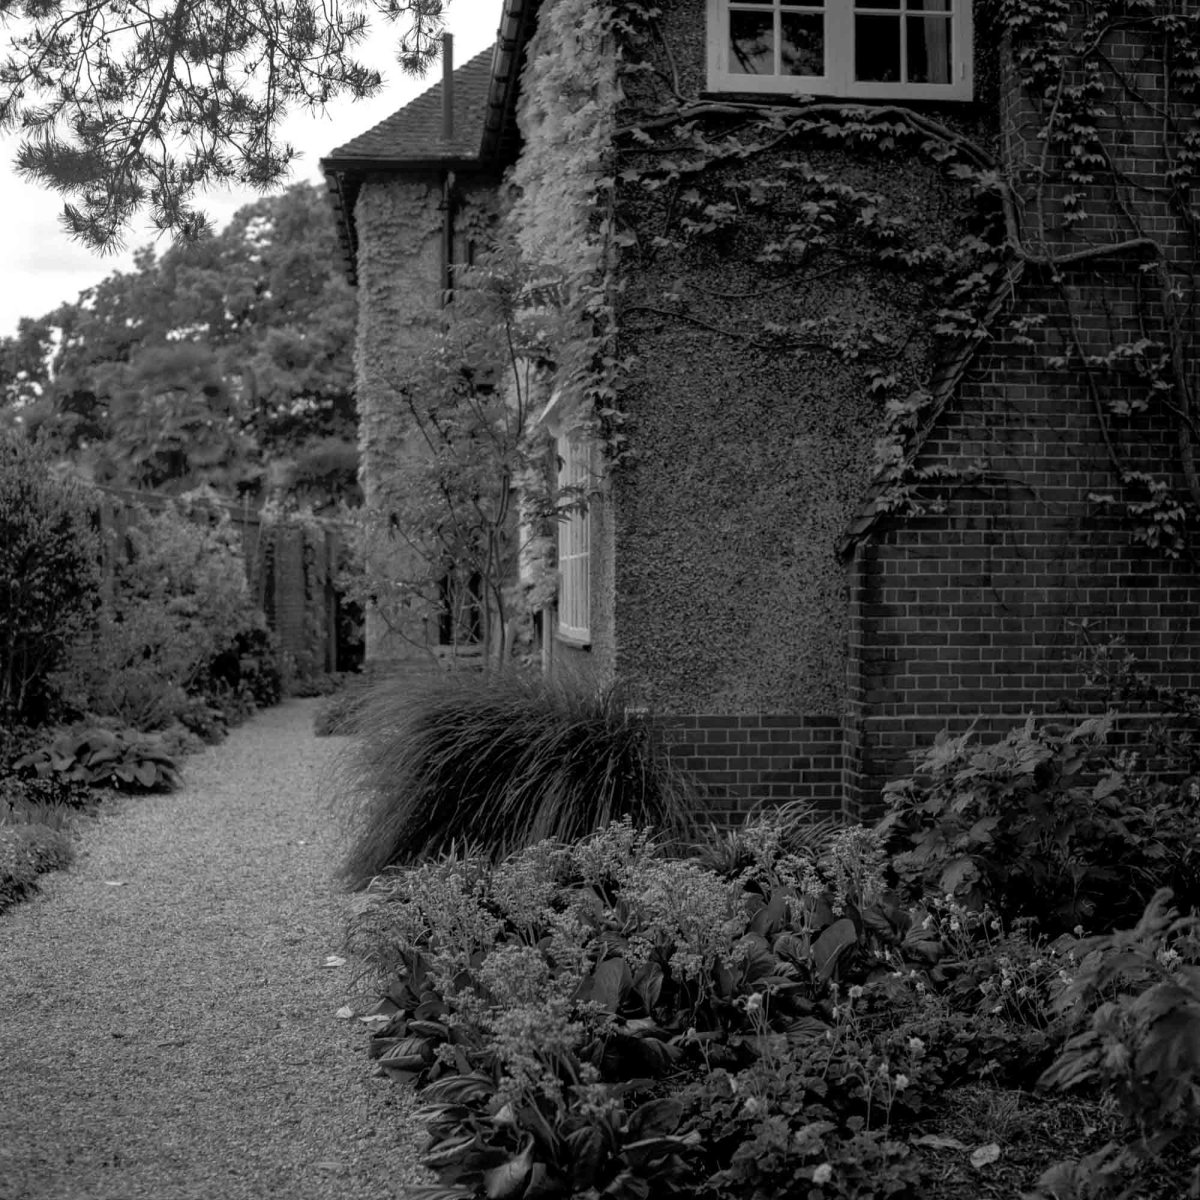 Side entrance - Shot on Fujifilm NEOPAN 100 ACROS at EI 200. Black and white negative film in 120 format shot as 6x6. 1-stop push process.